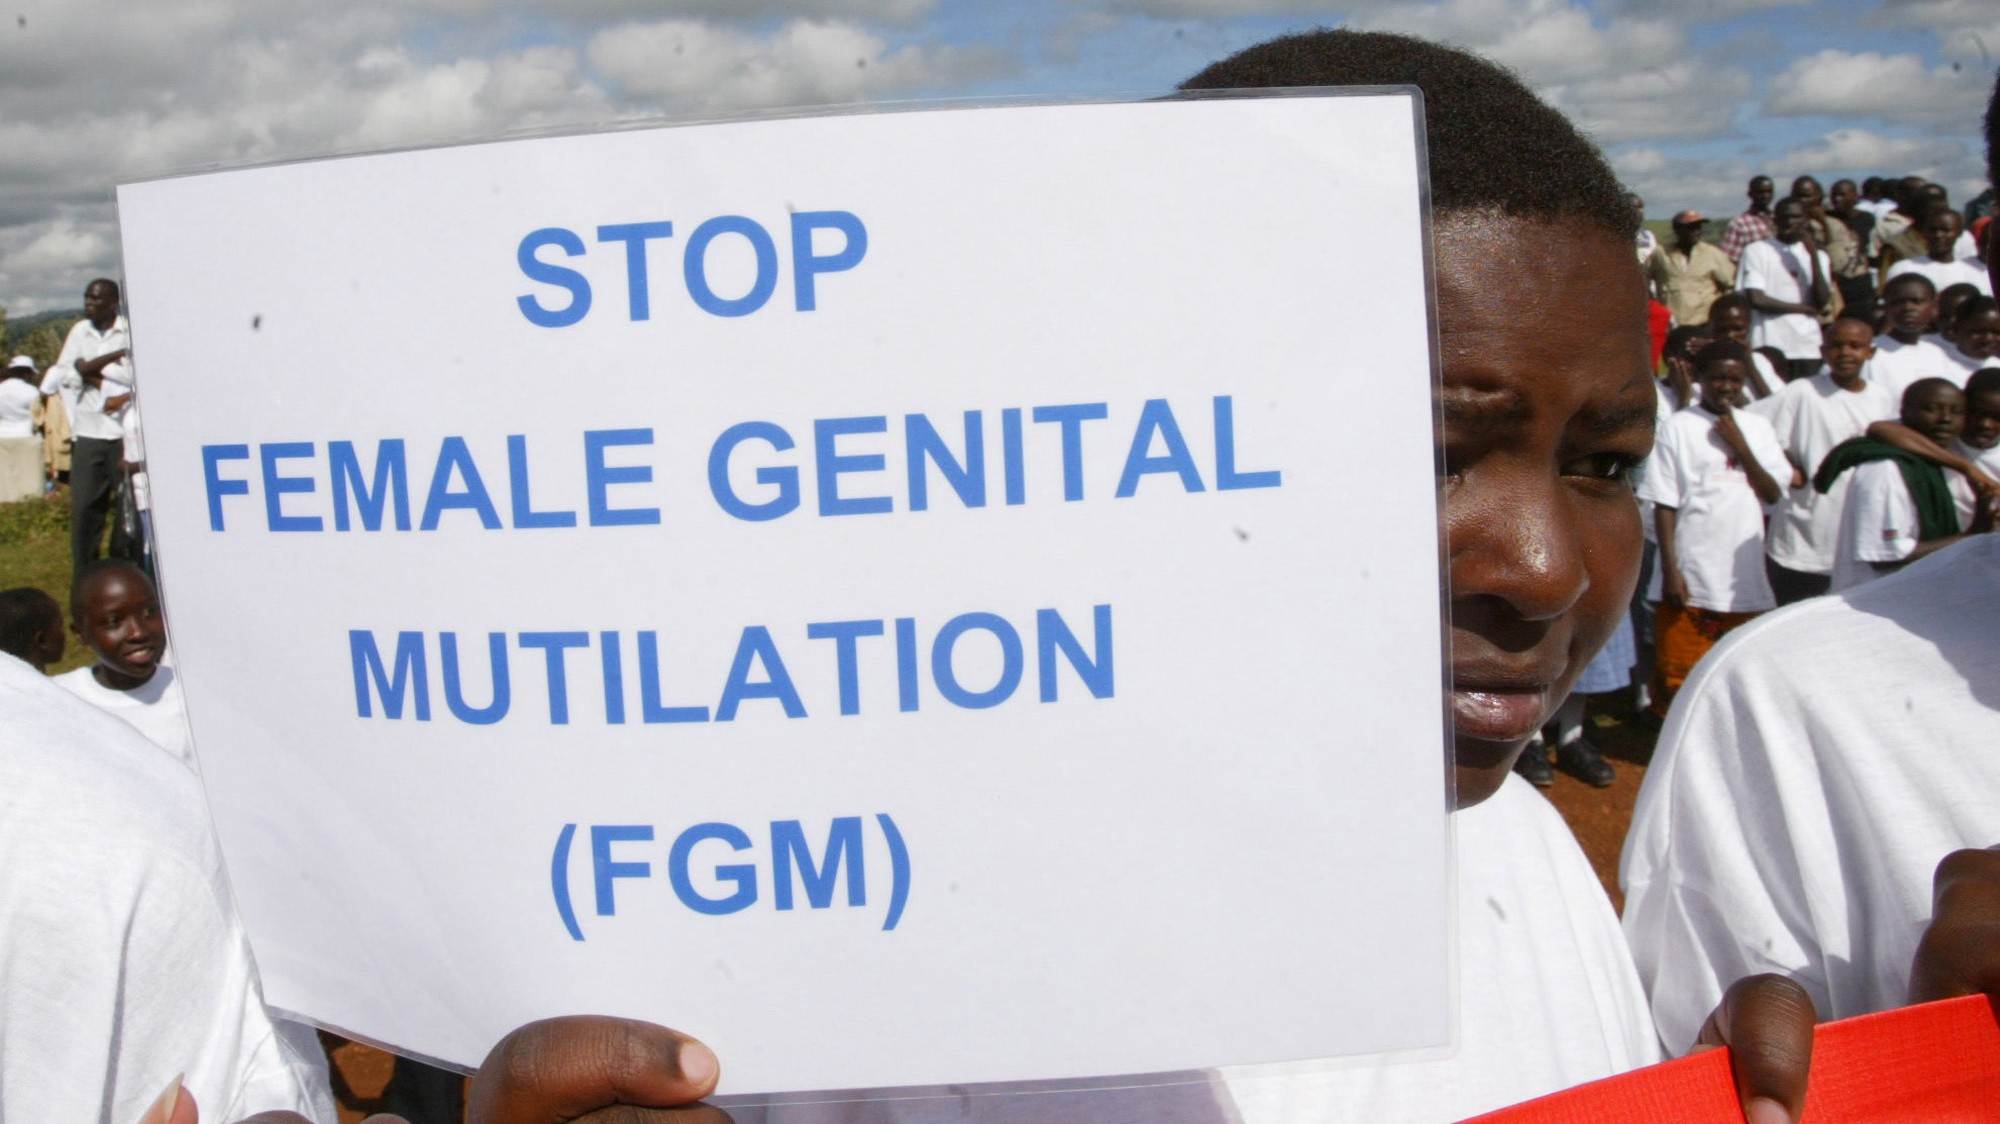 Thousands of FGM Cases Identified in UK Are Just the 'Tip of the Iceberg'